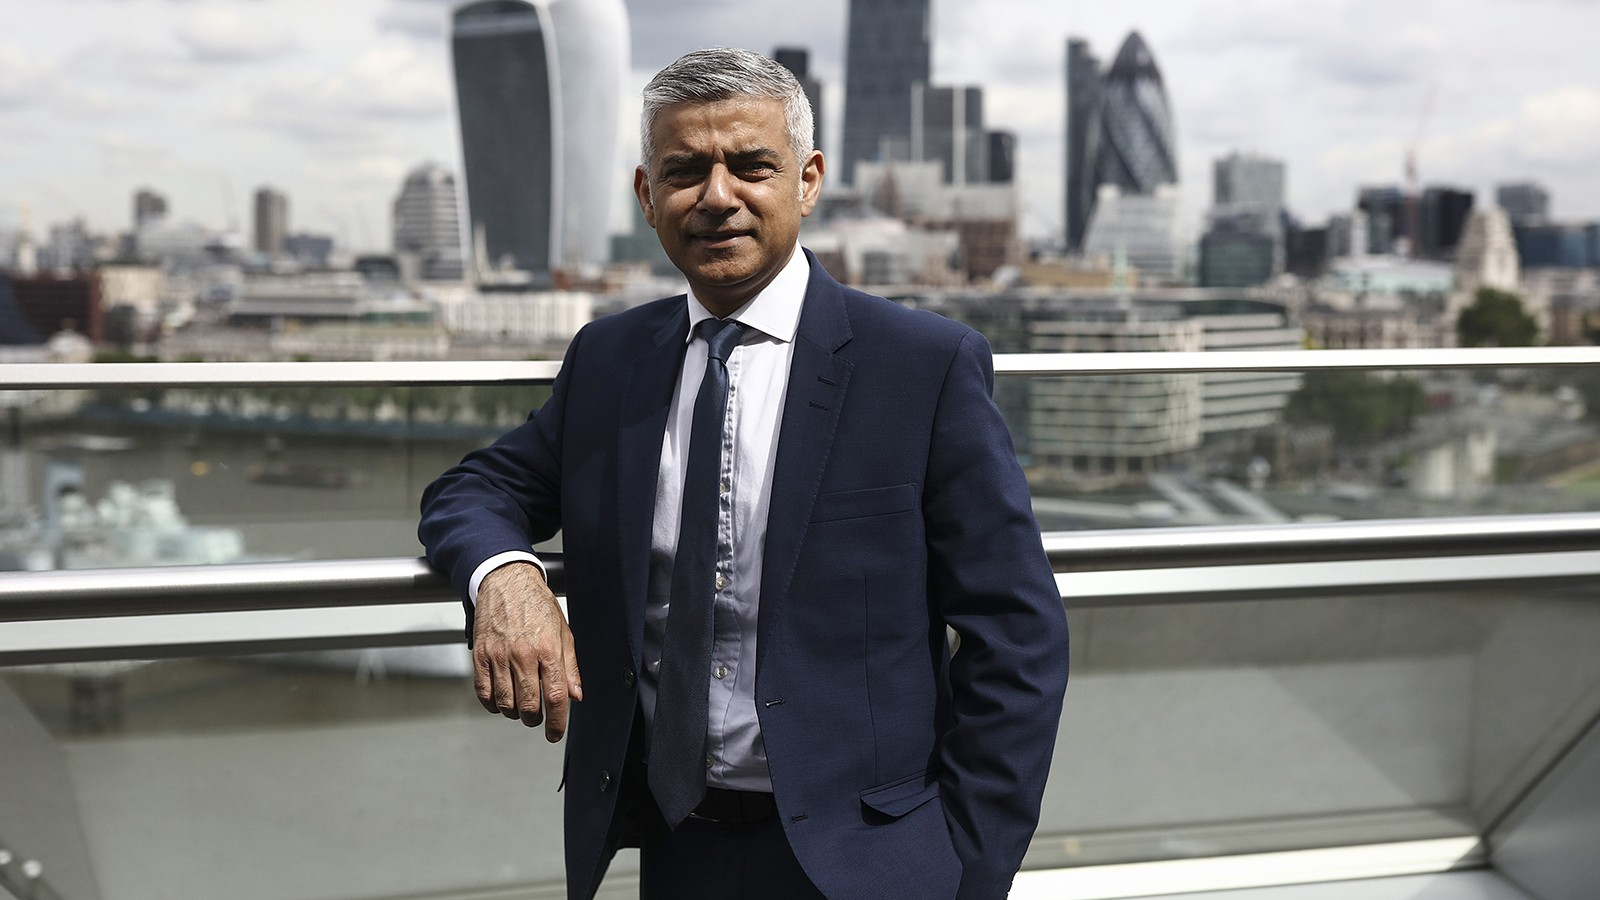 Sadiq Khan has already started concrete plans to make London safer for cyclists